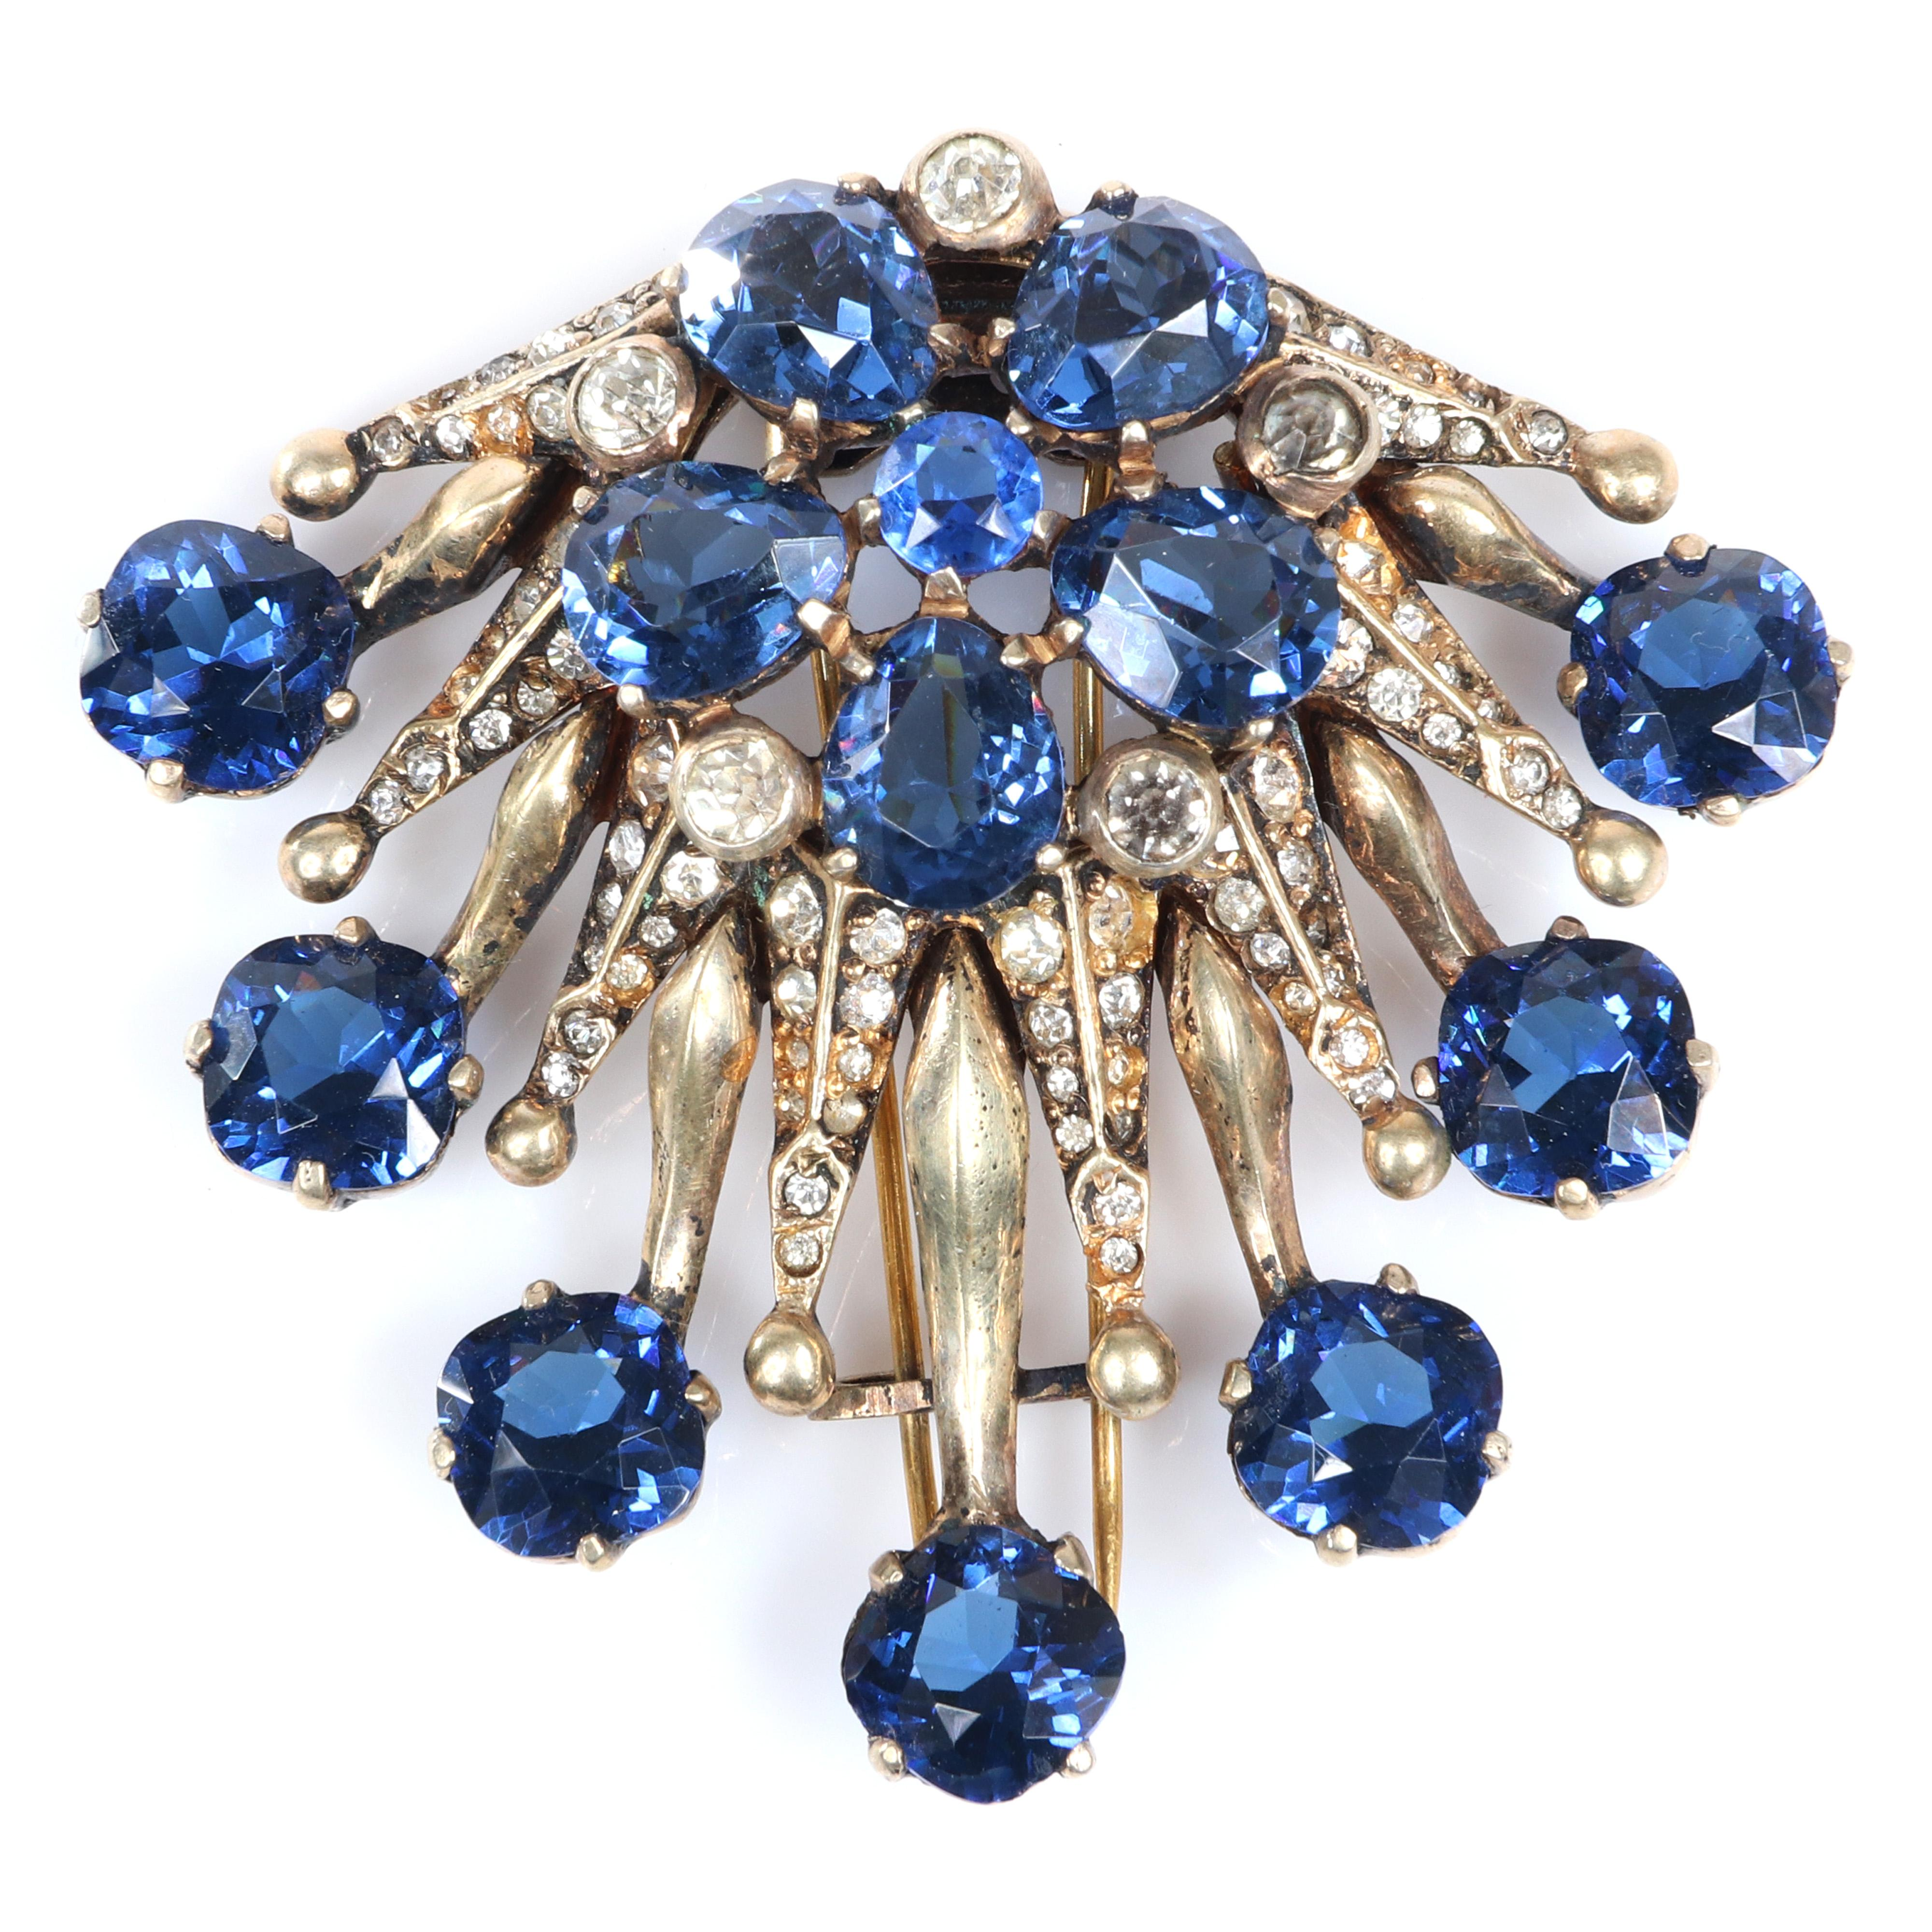 """Eisenberg Original sterling vermeil dimensional Deco fur clip central flower and tips of blue faceted crystals and spikes with pave rhinestones and bezel-sets, mid-1940s. 2 1/2"""" x 2 3/4"""""""